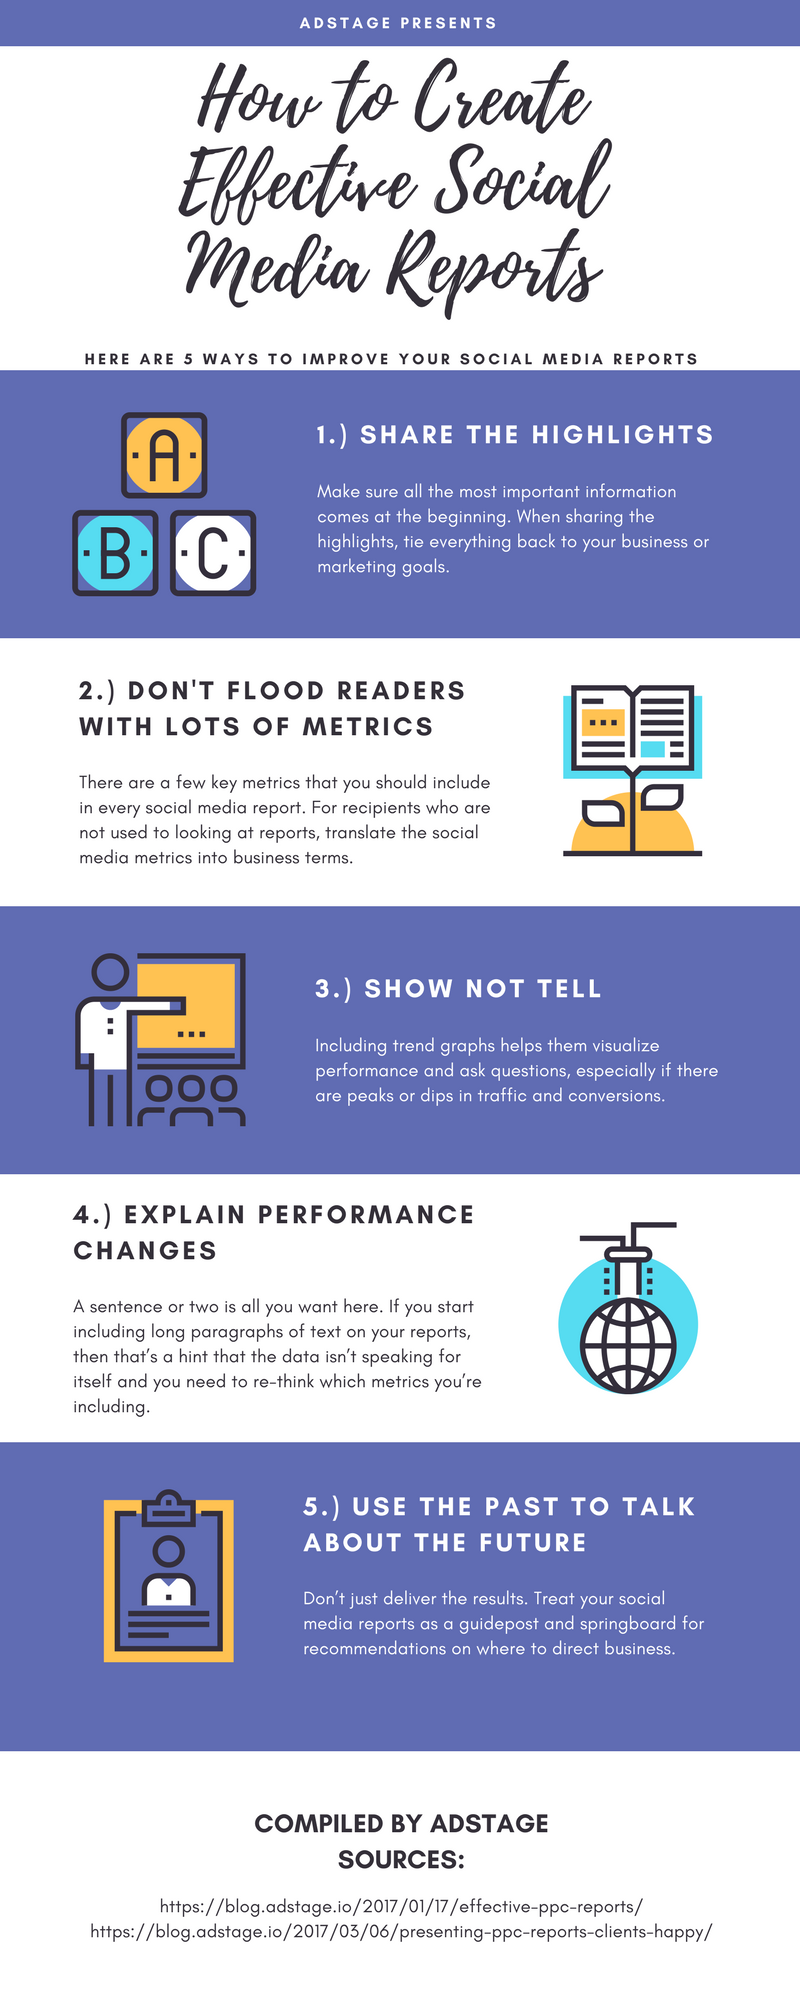 How to Create Effective Social Media Reports [Infographic] | Social Media Today